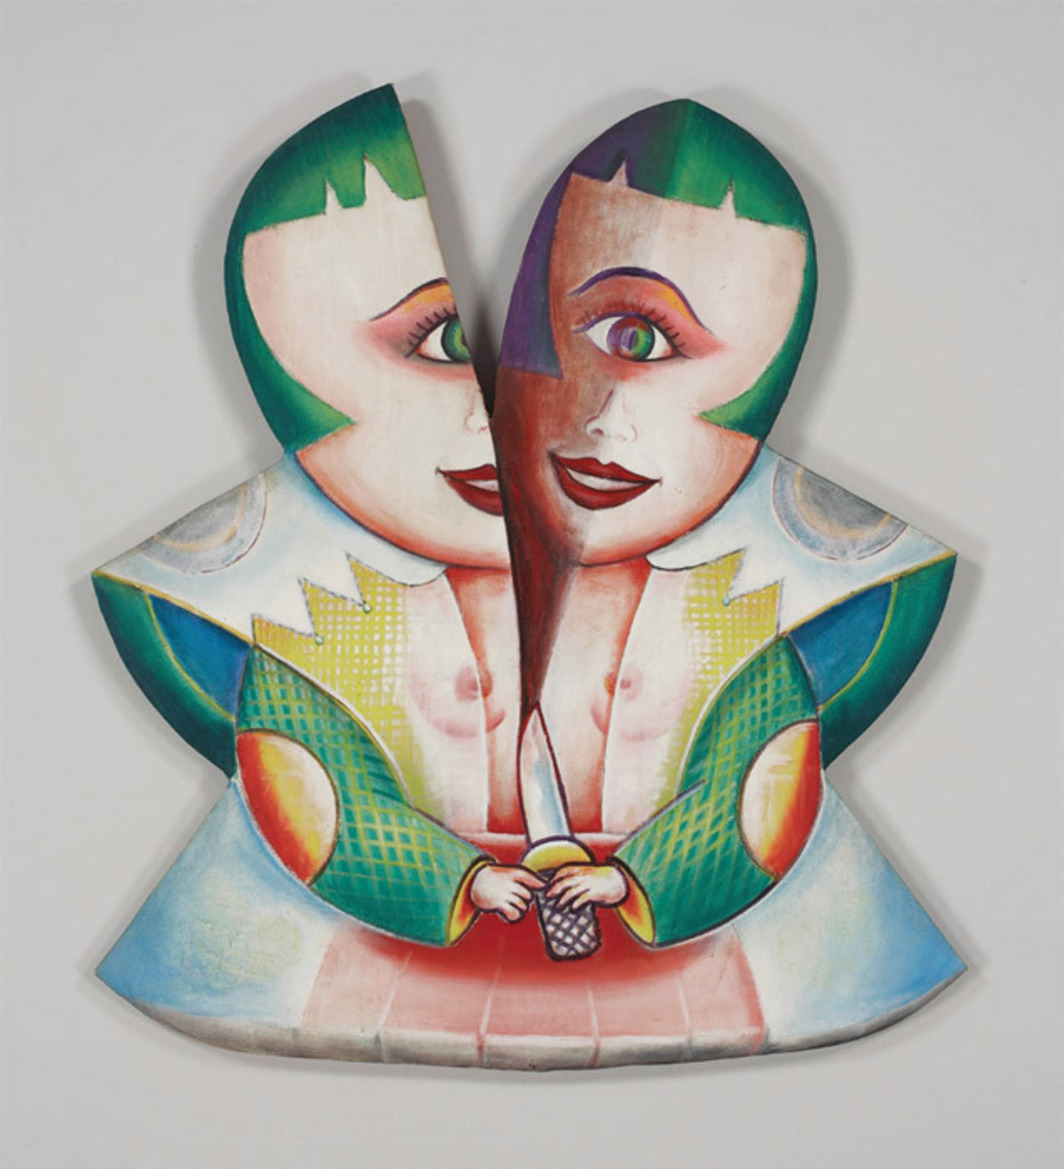 "E'wao Kagoshima, Libidoll No. 1, 1985, oil on shaped canvas, 48 x 42 x 2 1/2""."